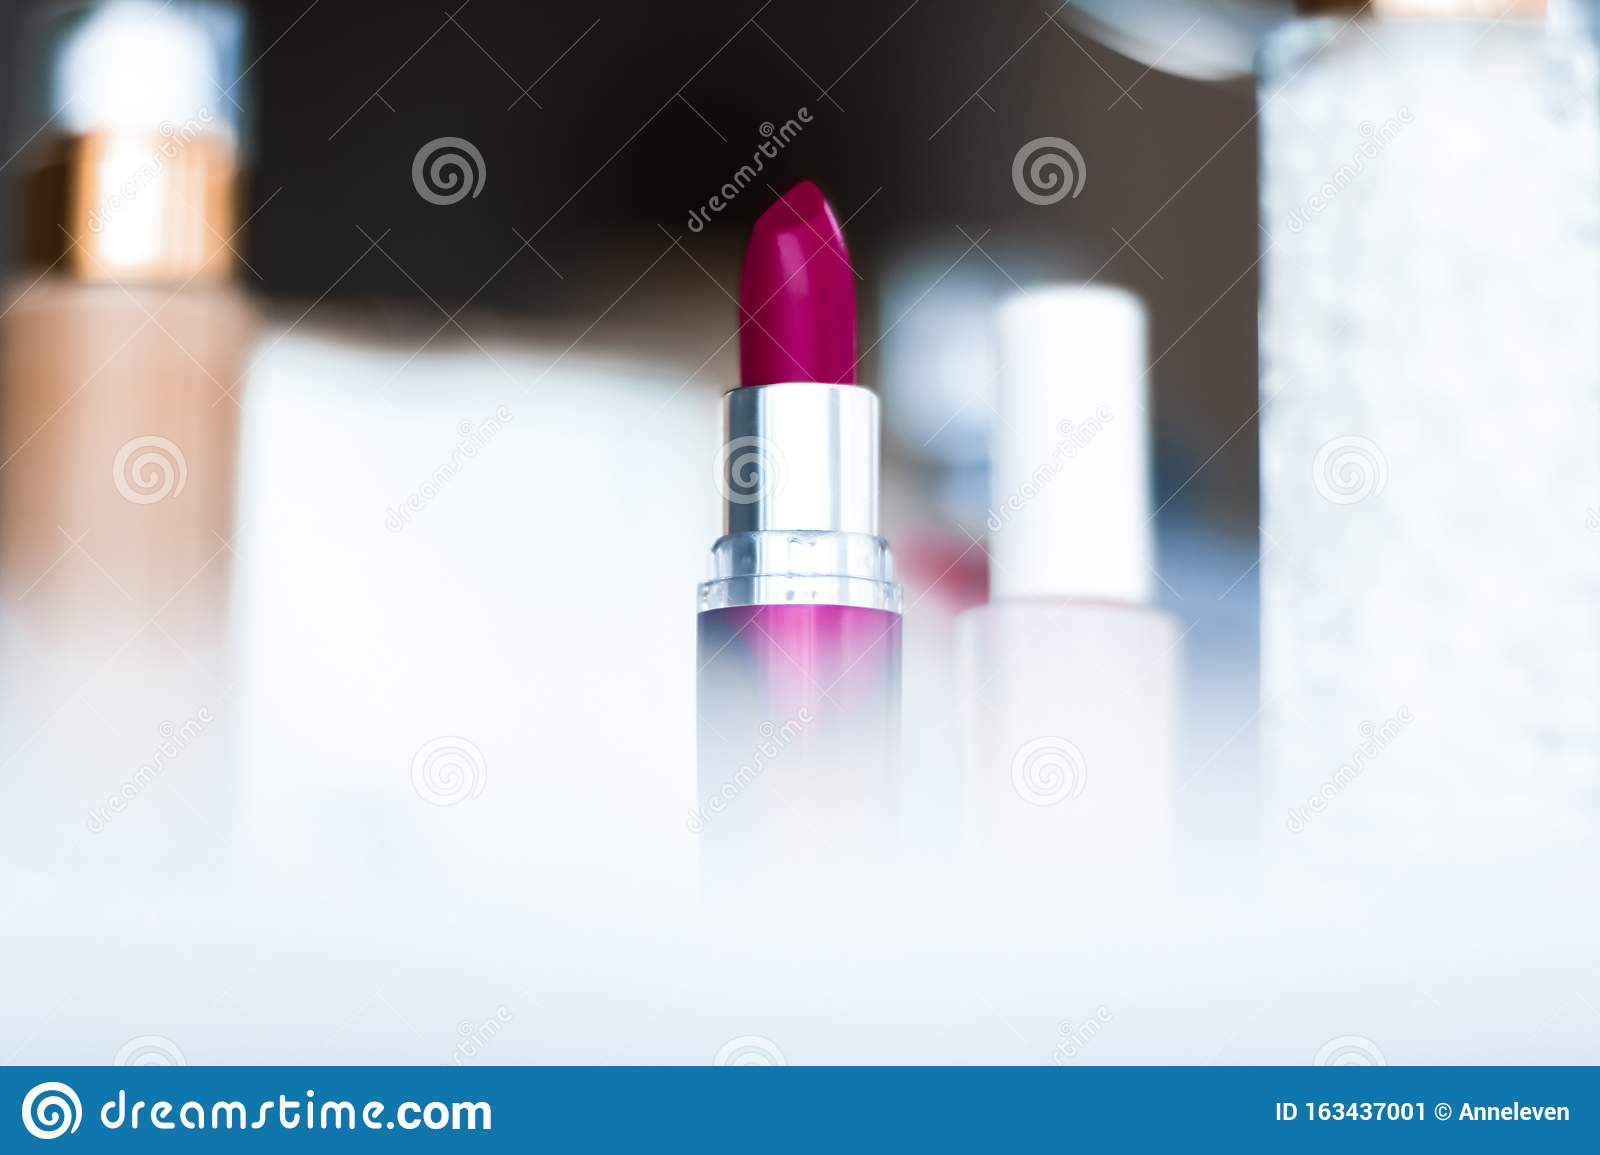 Cosmetics, makeup products on dressing vanity table, lipstick, foundation base, nailpolish and eyeshadows for luxury beauty and